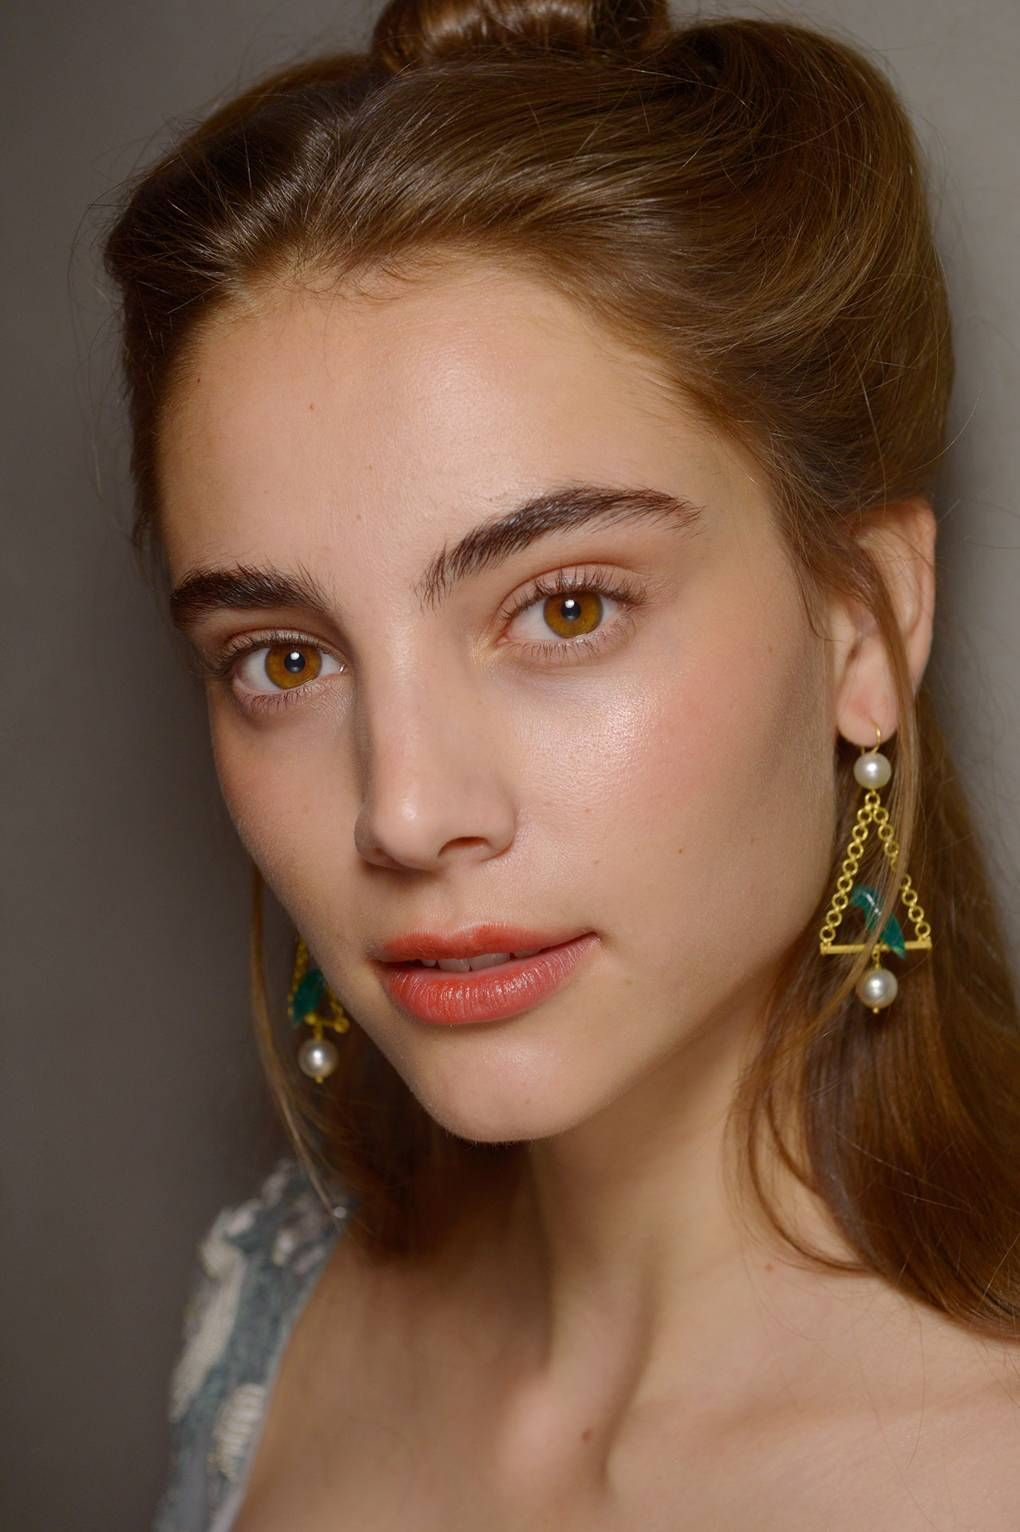 The 11 Key Beauty Trends Of Spring Summer 2019 Summer 2019 Makeup